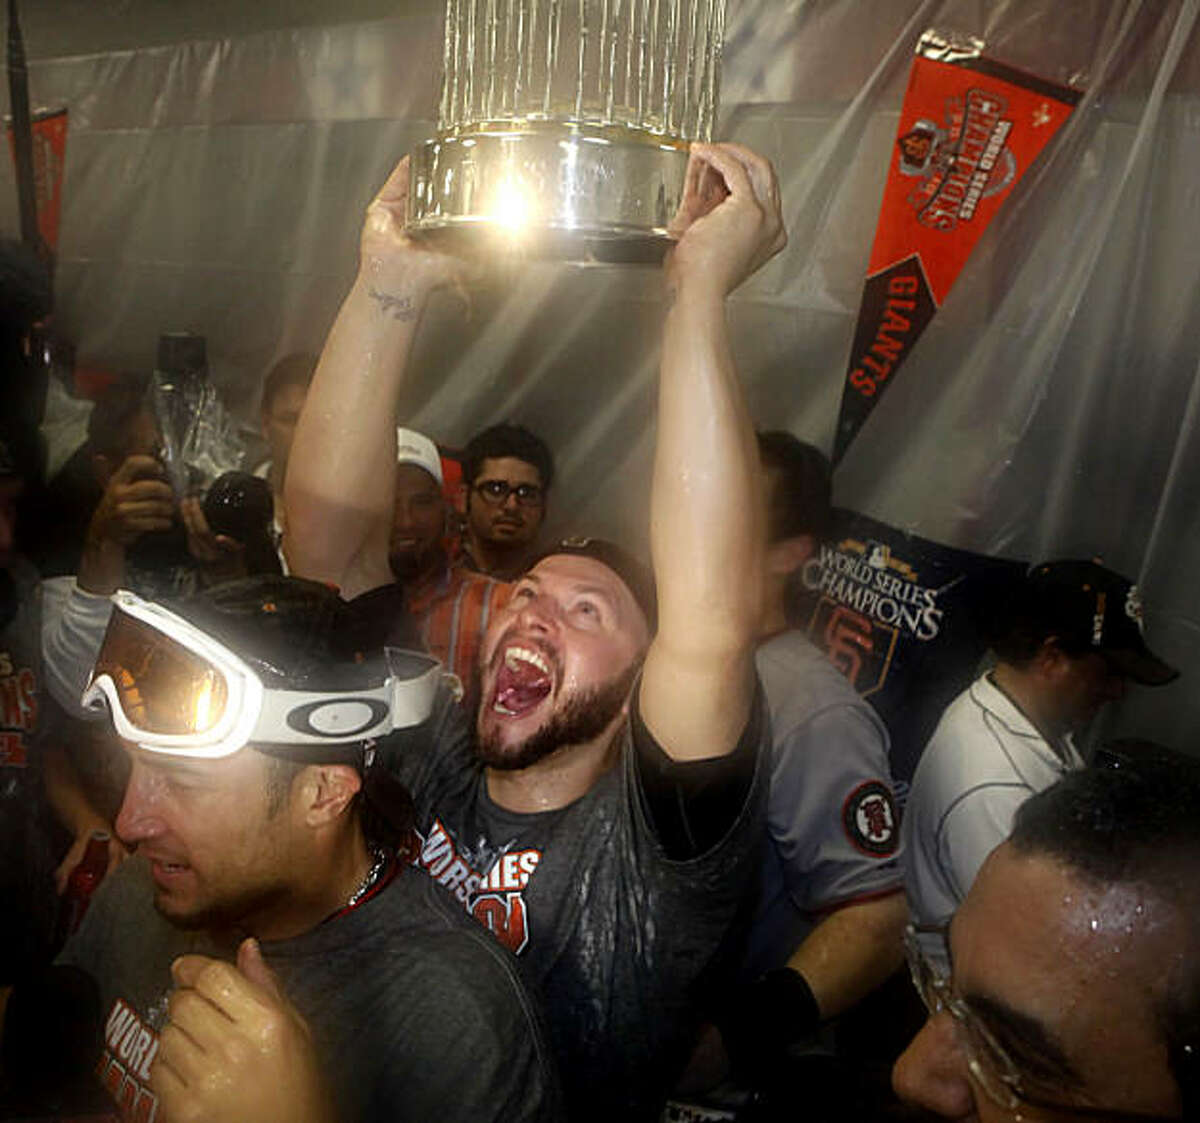 San Francisco Giants' Cody Ross (13) lifts the 2010 World Series Championship trophy over his head in the Visiting Clubhouse at Rangers Ballpark after the San Francisco Giants win Game 5 of the World Series over the Texas Rangers 3-1 on Monday November 1San Francisco Giants' Cody Ross (13) lifts the 2010 World Series Championship trophy over his head in the Visiting Clubhouse at Rangers Ballpark after the San Francisco Giants win Game 5 of the World Series over the Texas Rangers 3-1 on Monday November 1, 2010 in Arlington, Texas.